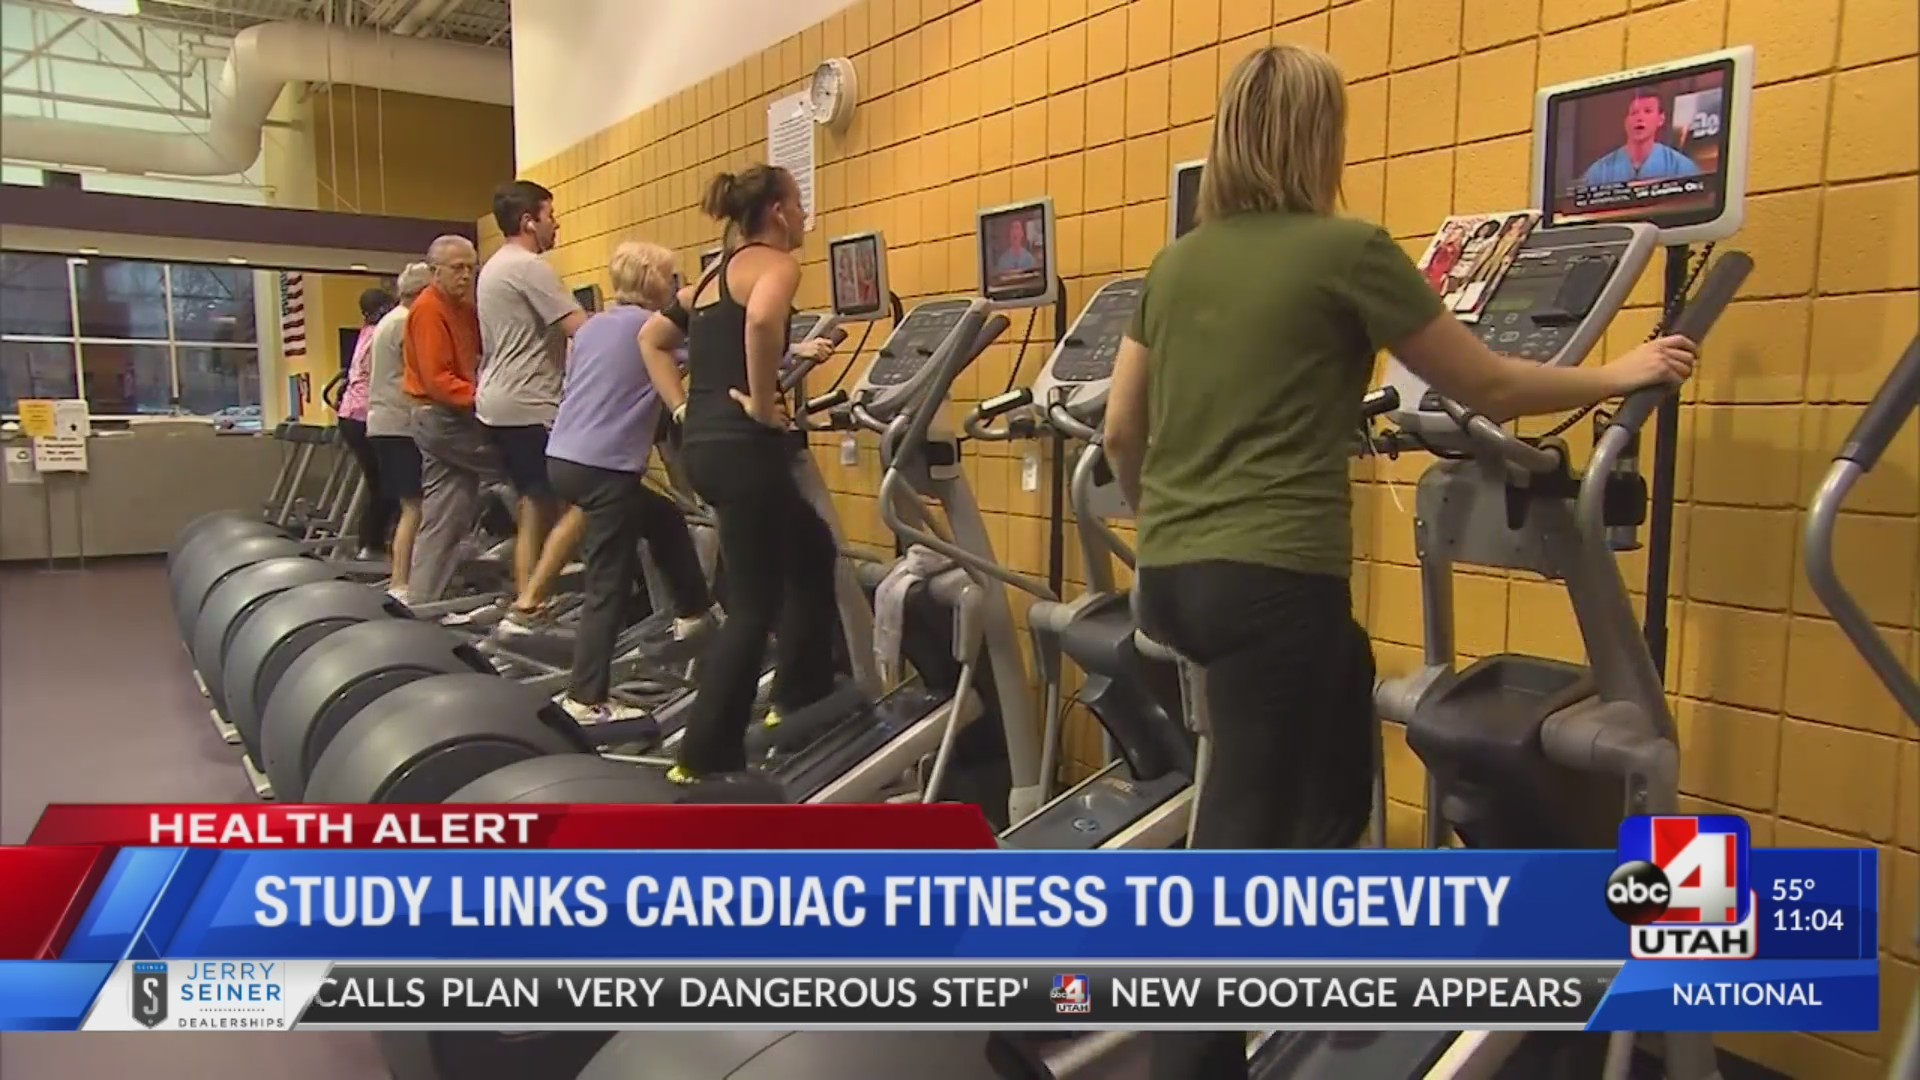 Adding cardio into your fitness routine can help you live a longer life